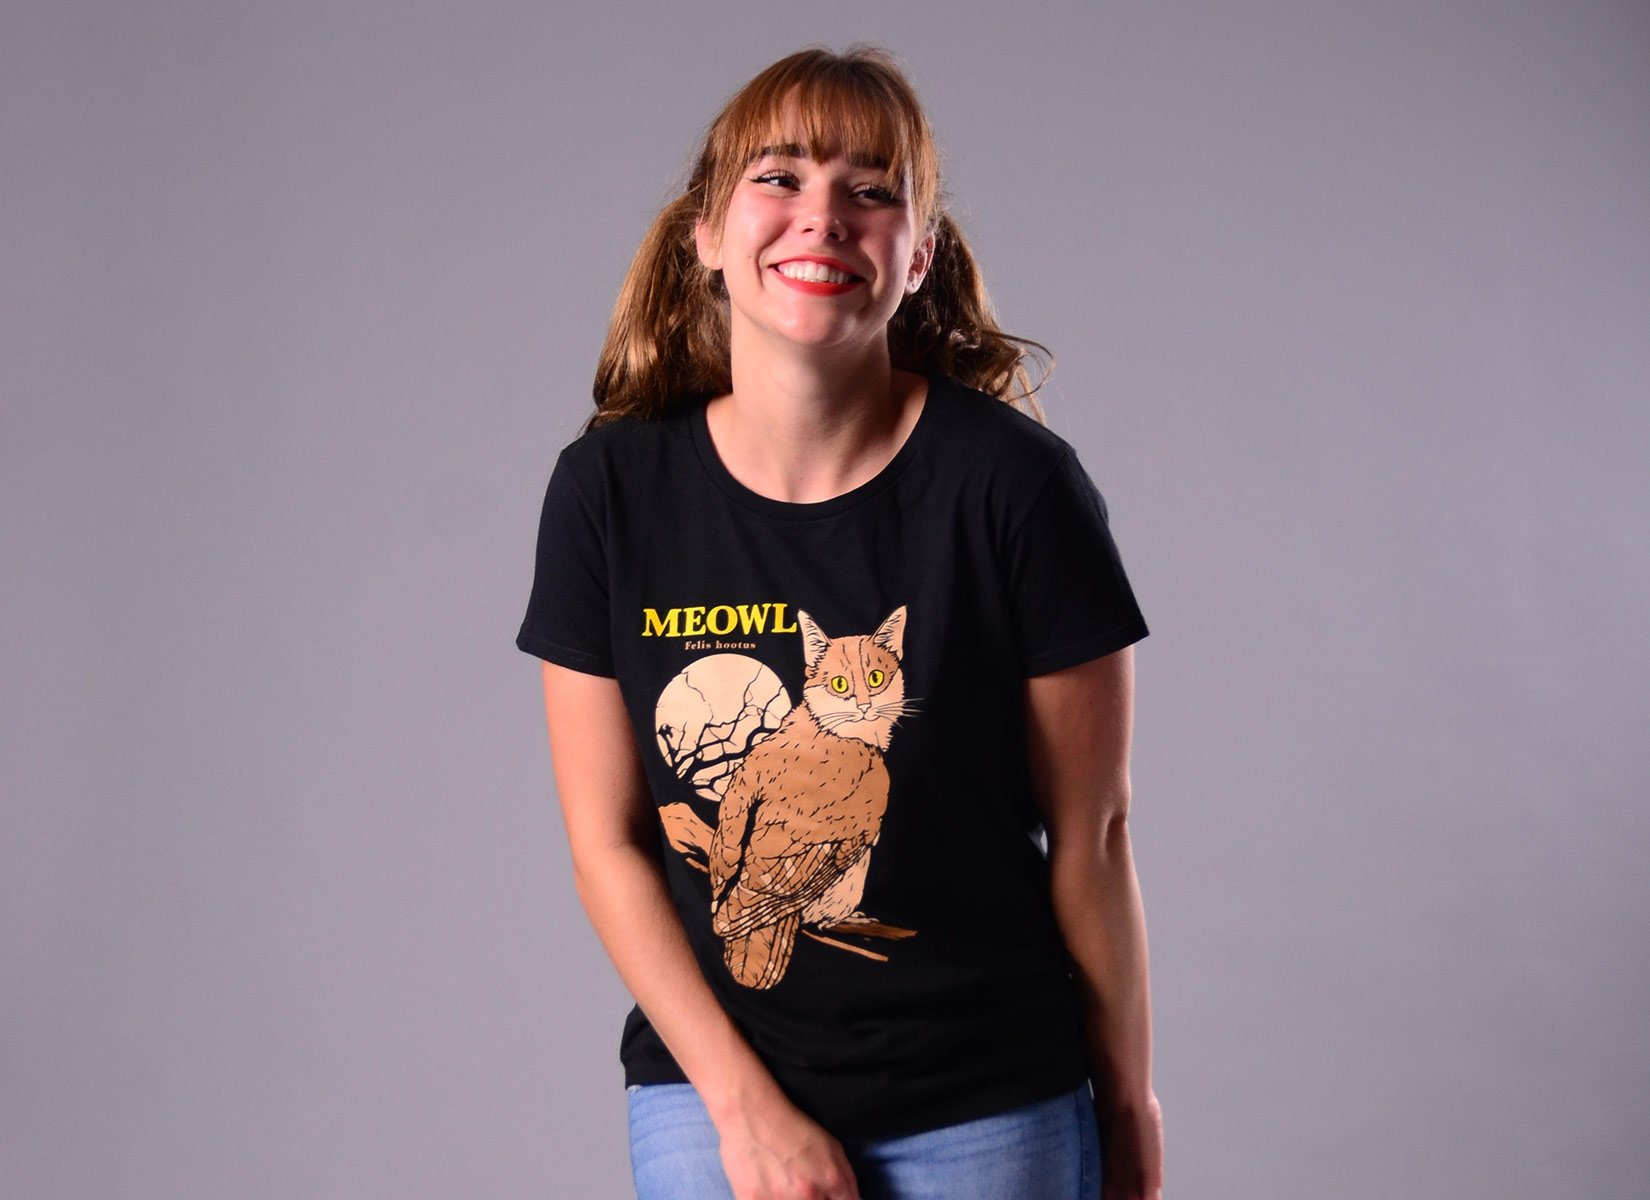 Meowl on Womens T-Shirt